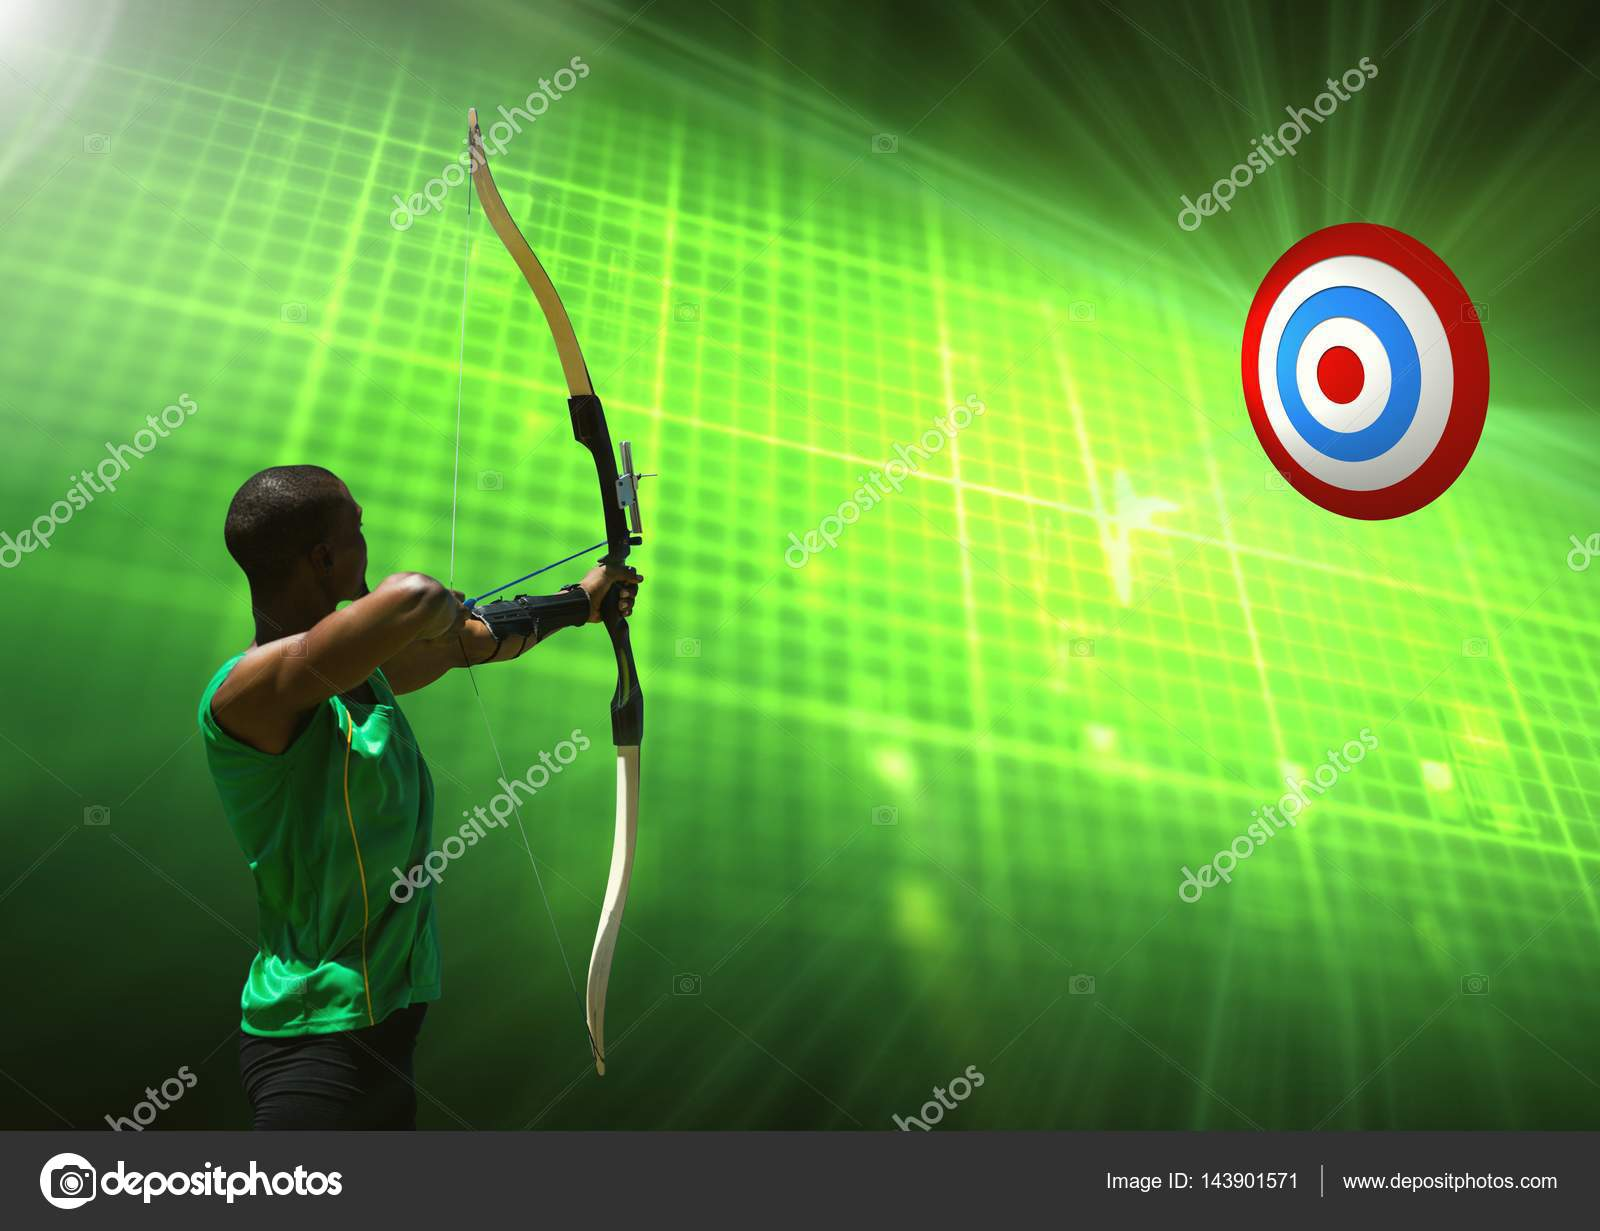 Digital Composition Of Man Aiming With Bow And Arrow At Target Against Green Background Photo By Wavebreakmedia